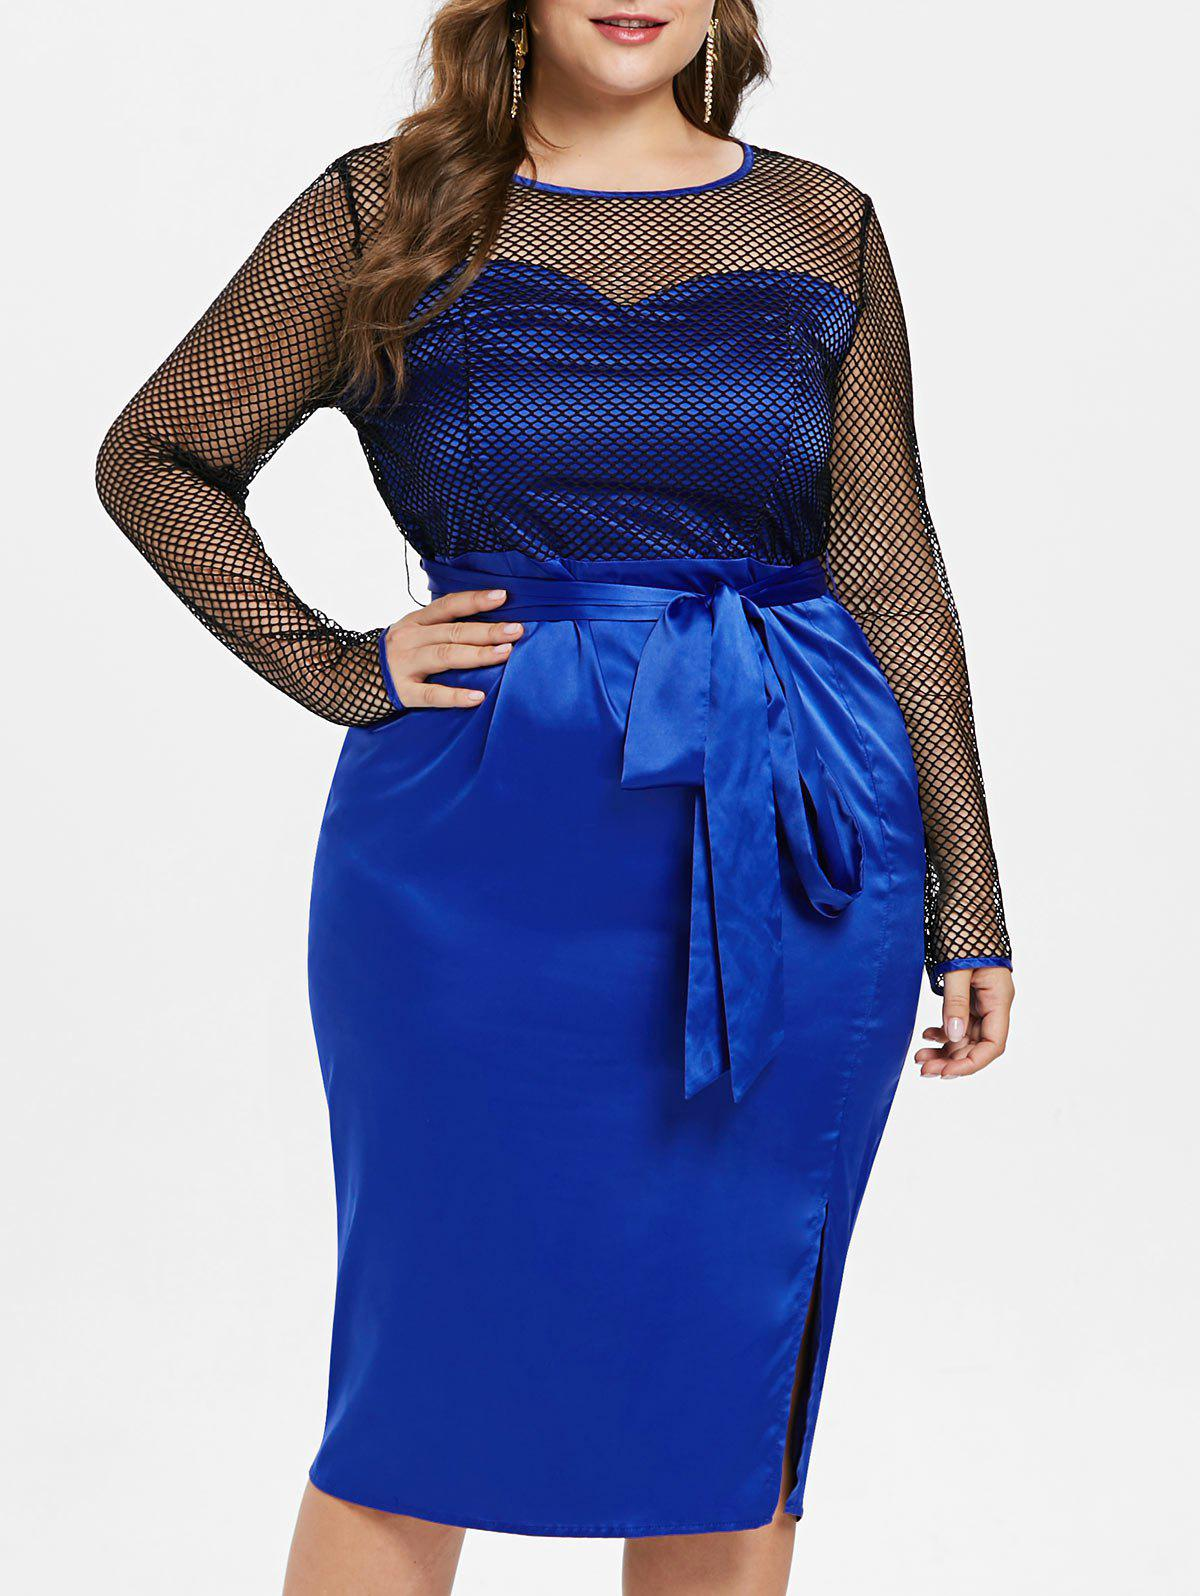 Fishnet Plus Size Belted Knee Length Dress - BLUE 3X